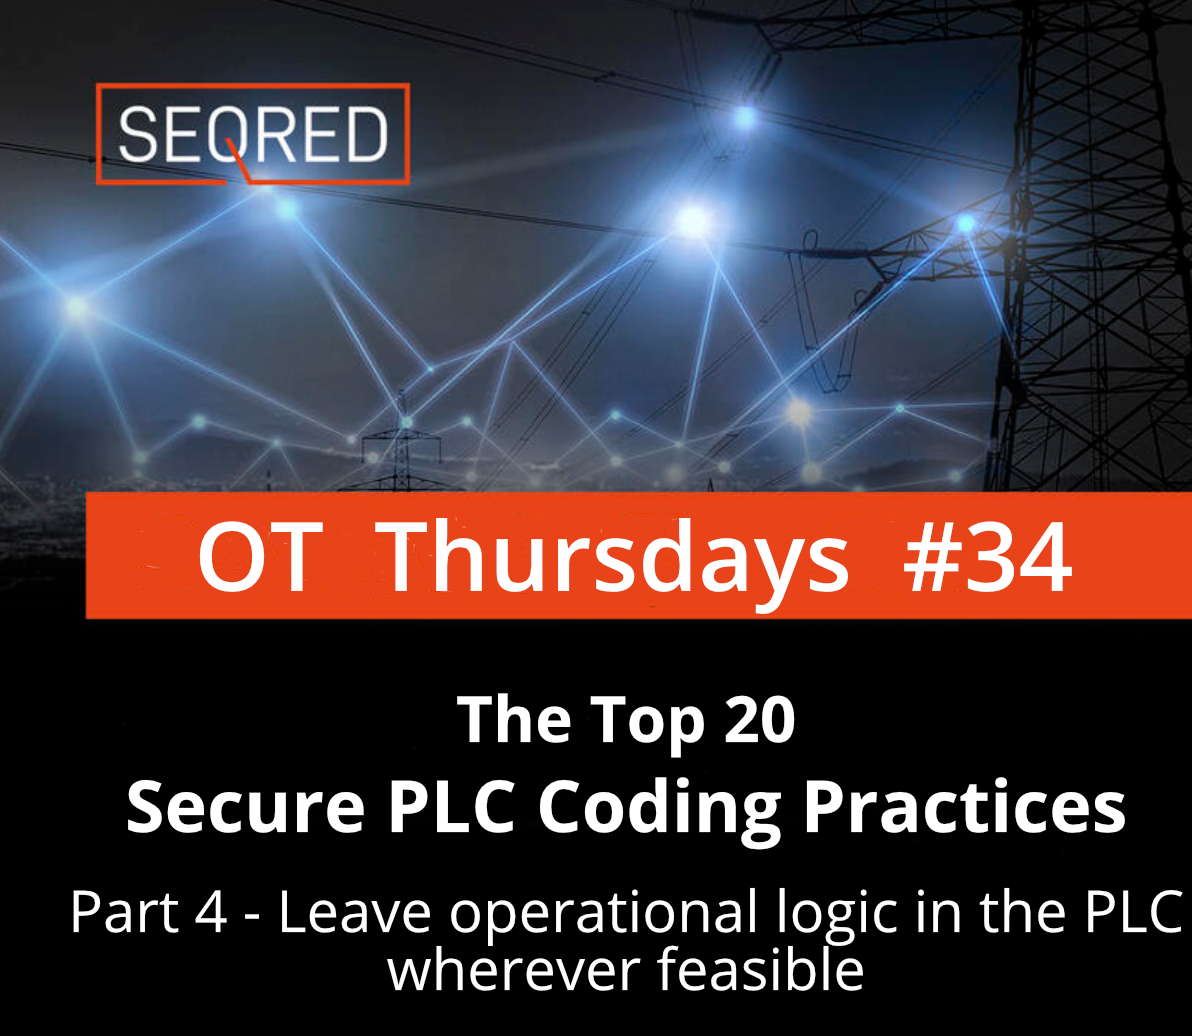 The Top 20 Secure PLC Coding Practices. Part 4 - Leave operational logic in the PLC wherever feasible